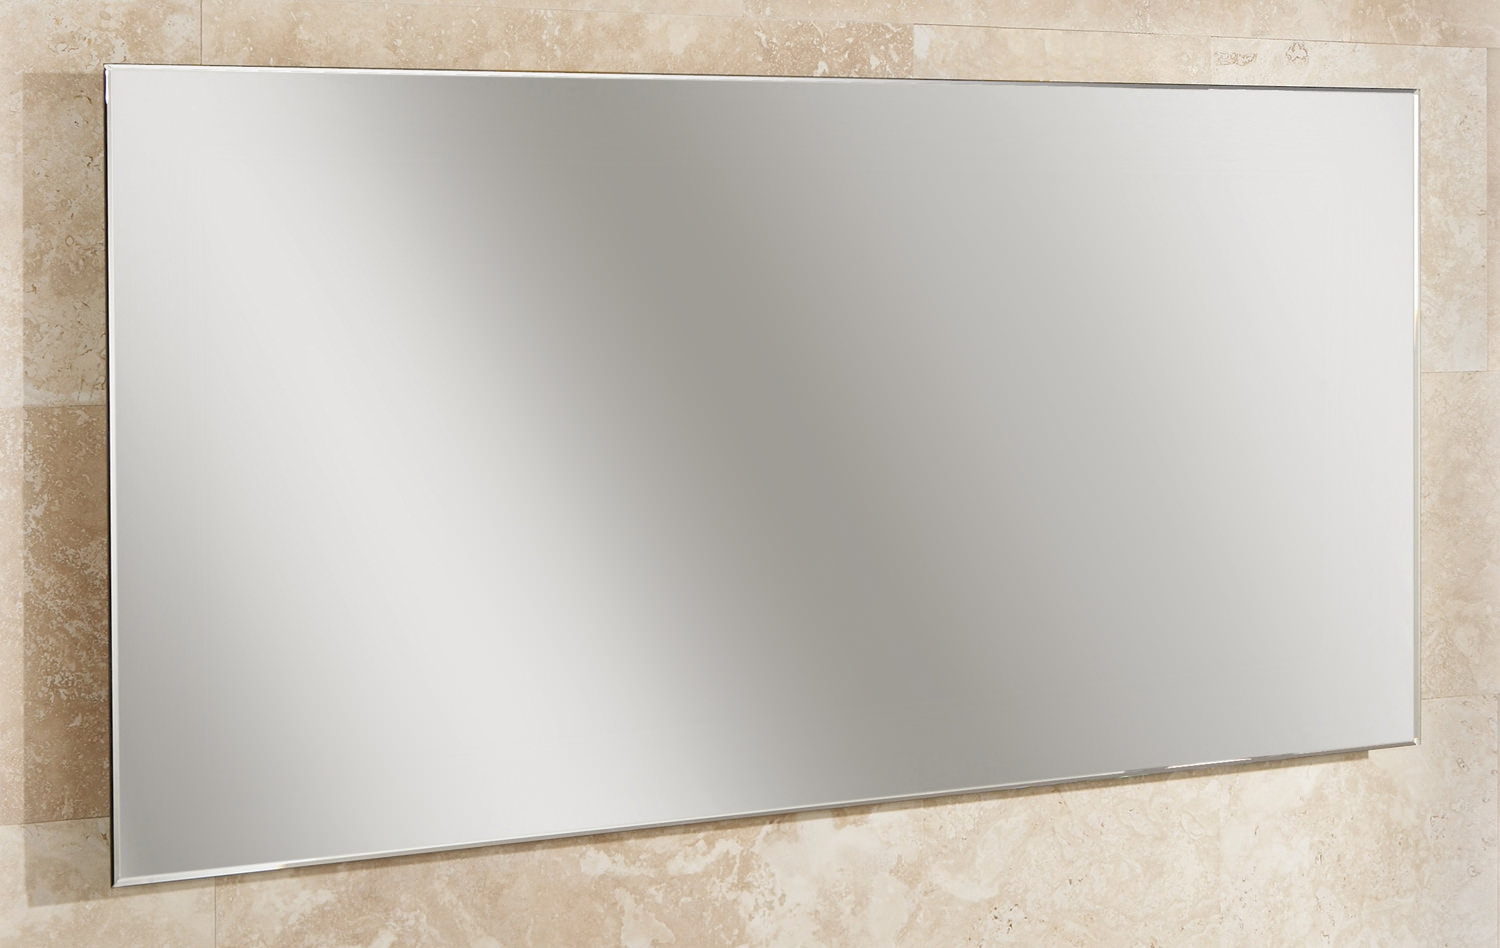 Hib Willow Landscape Bevelled Edge Mirror 1200 X 600mm 77305000 For Bevelled Edge Bathroom Mirror (Image 9 of 15)